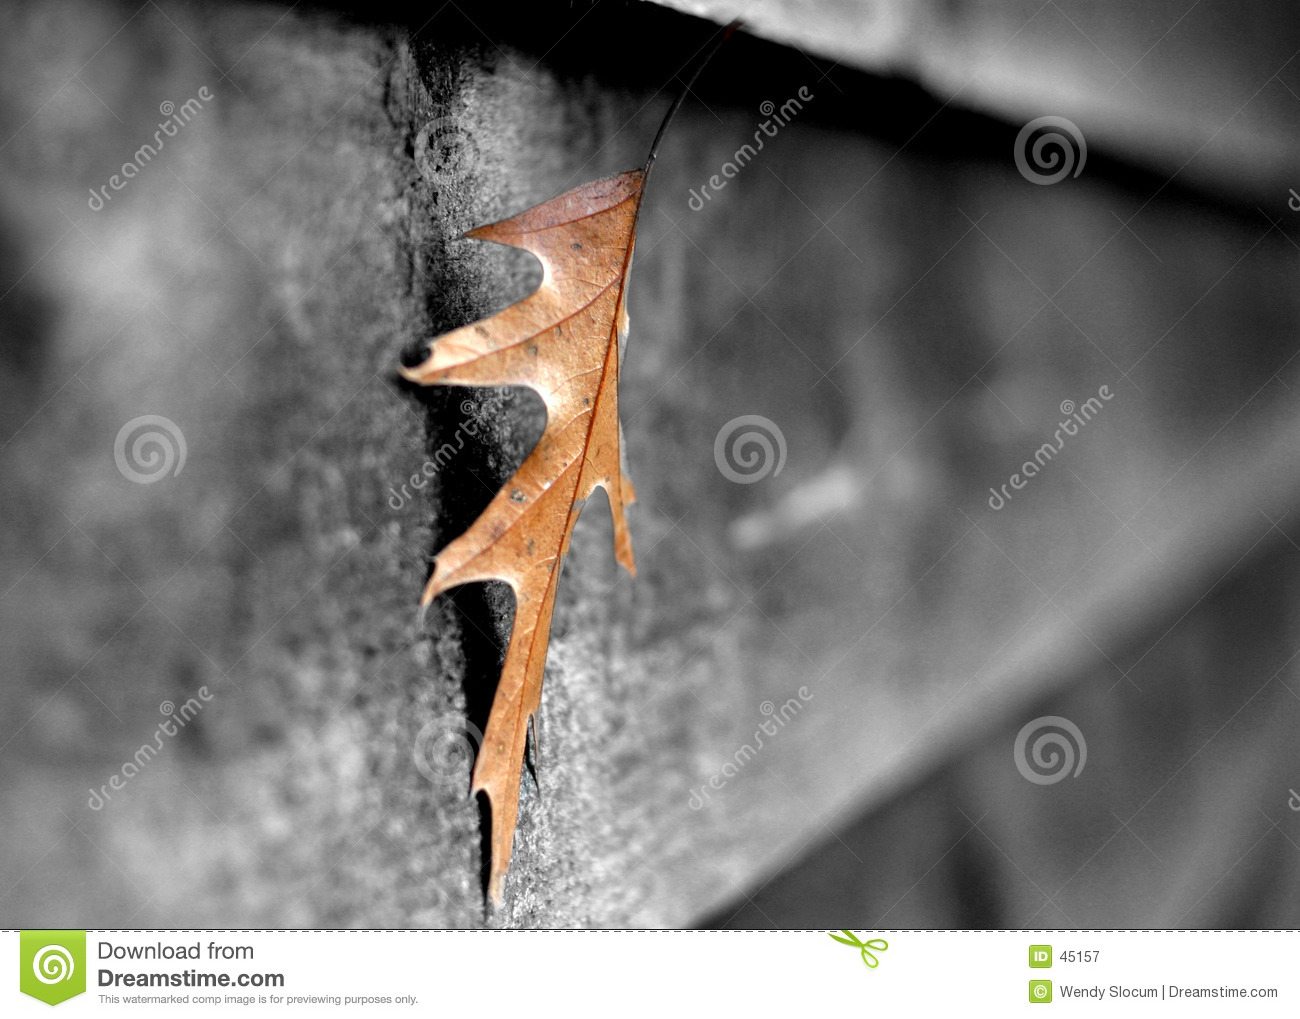 Leaf on shed